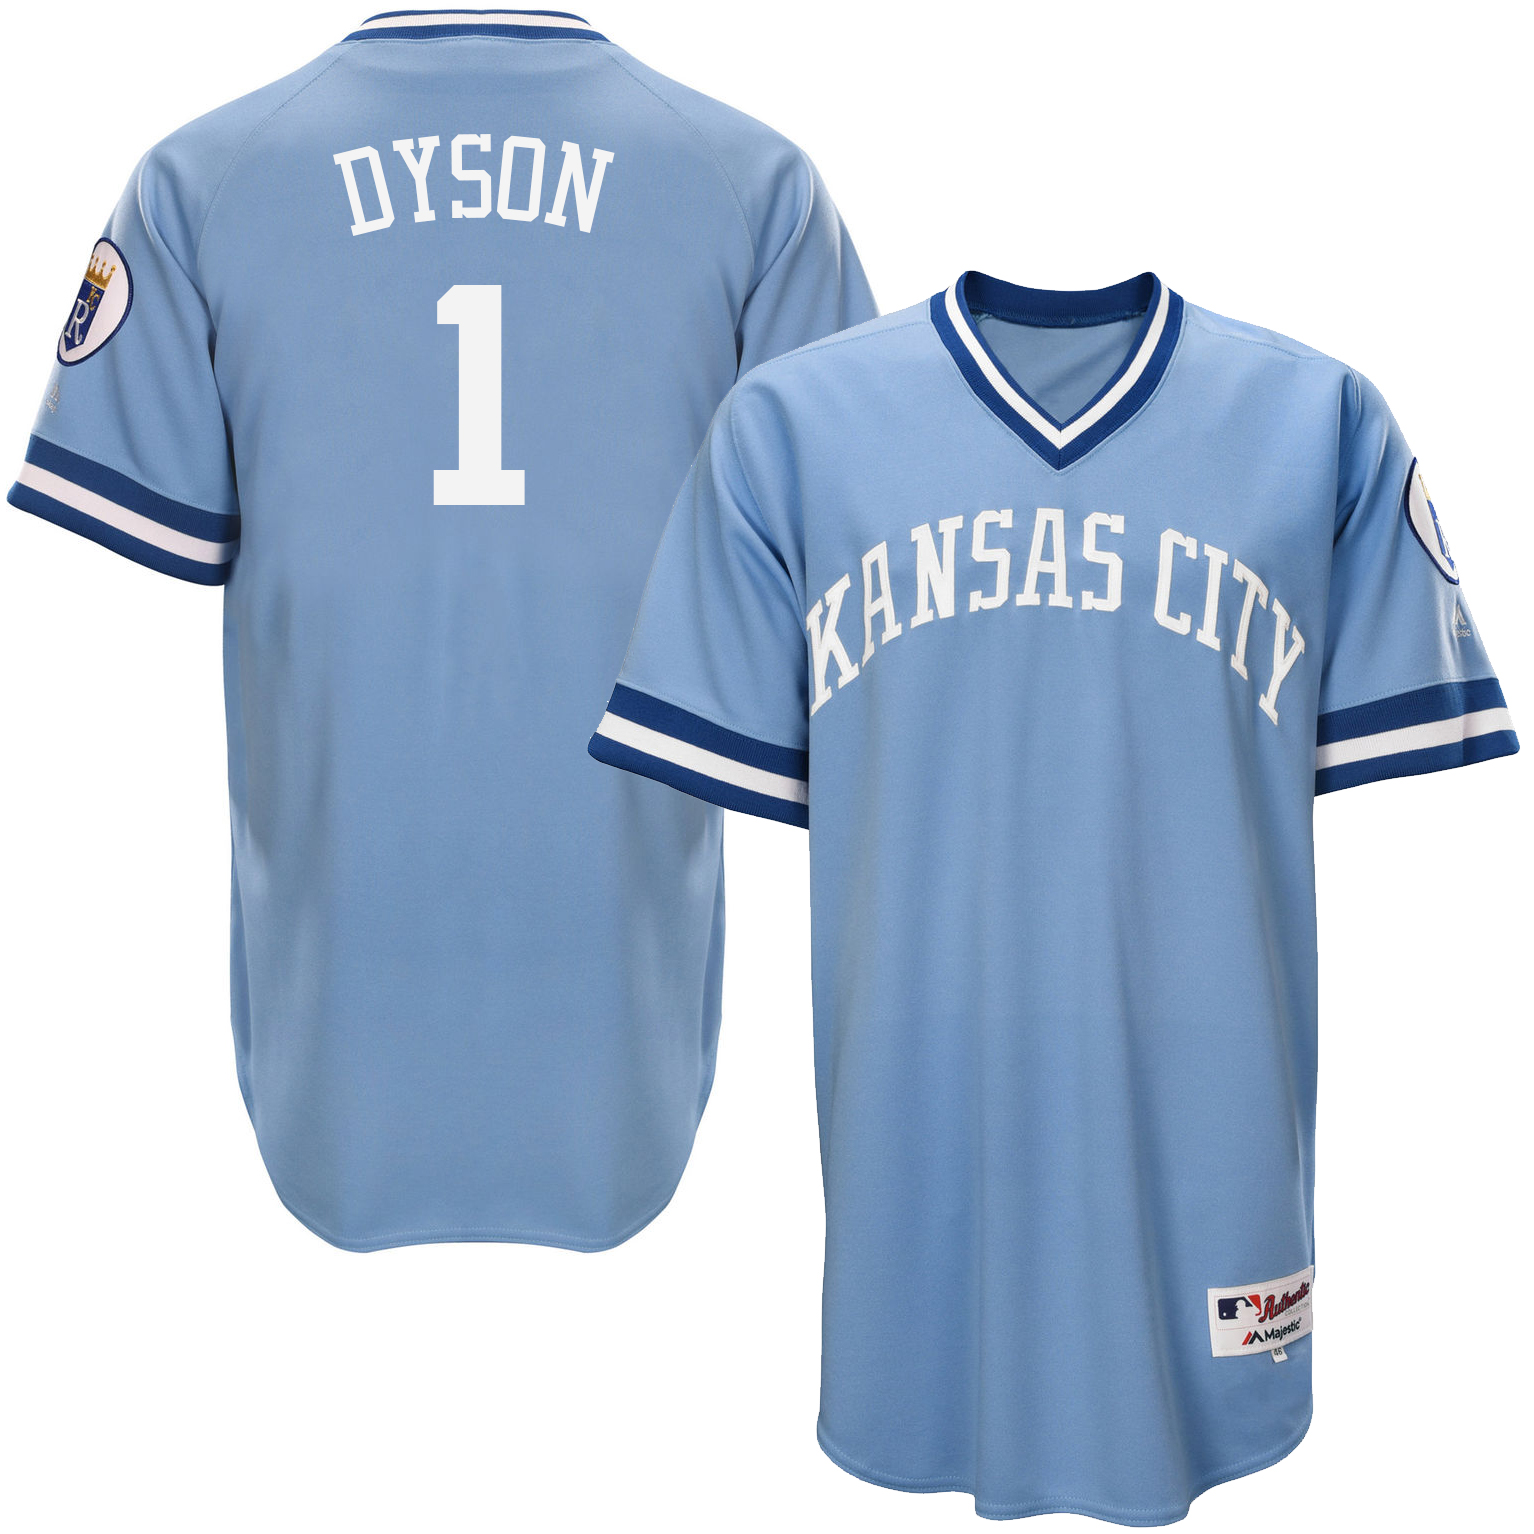 Royals 1 Jarrod Dyson Light Blue Throwback Jersey